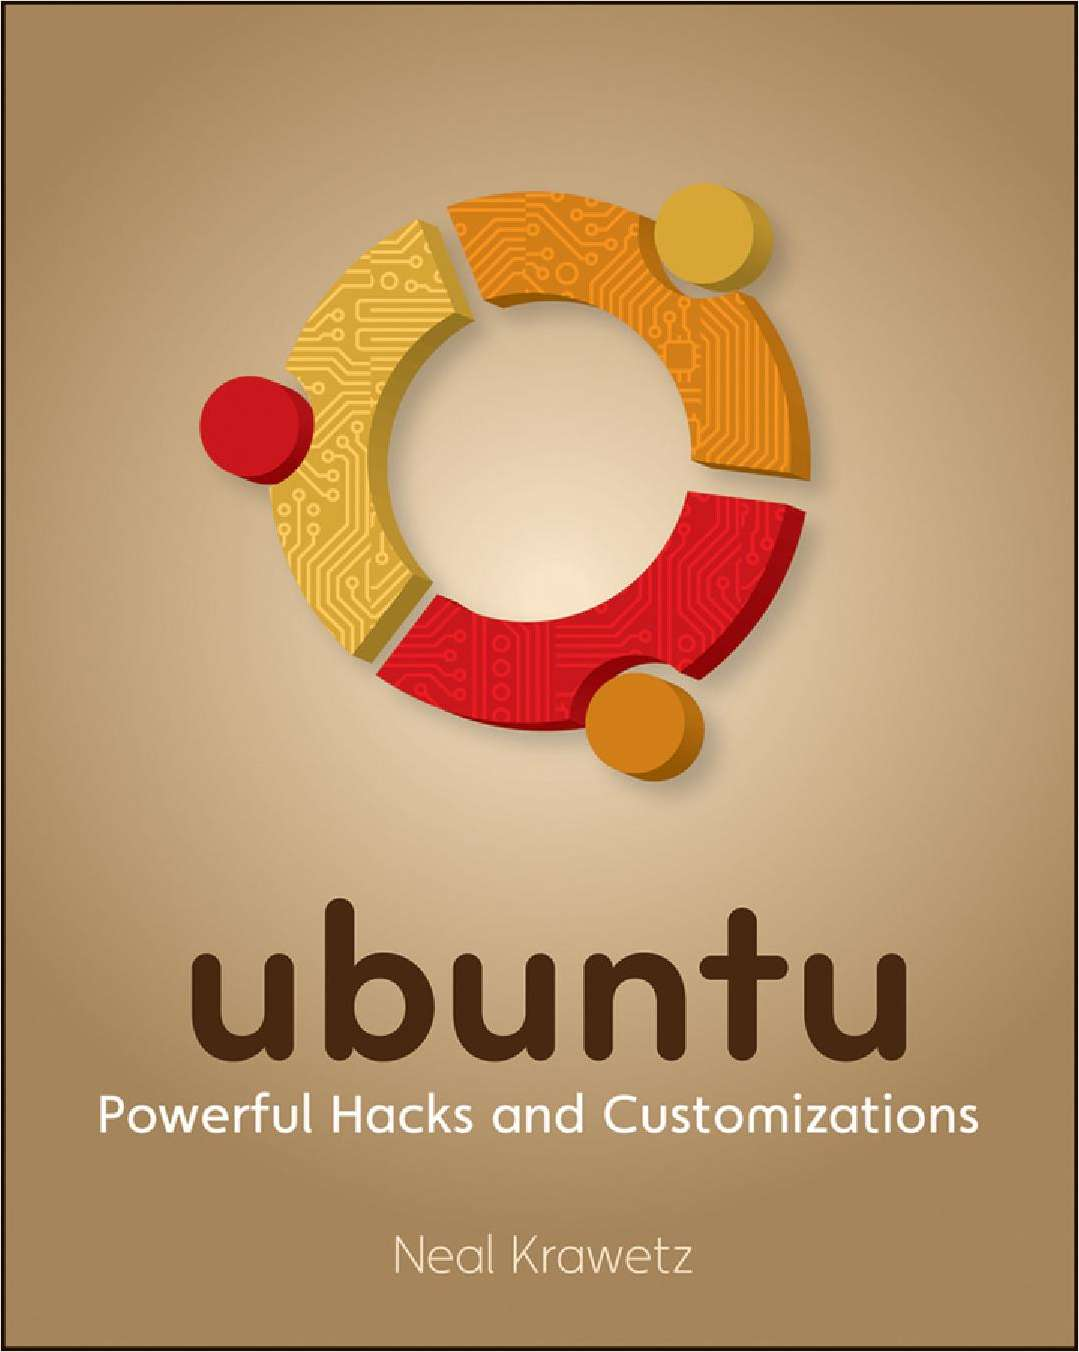 Ubuntu: Powerful Hacks and Customizations--Free Sample Chapter